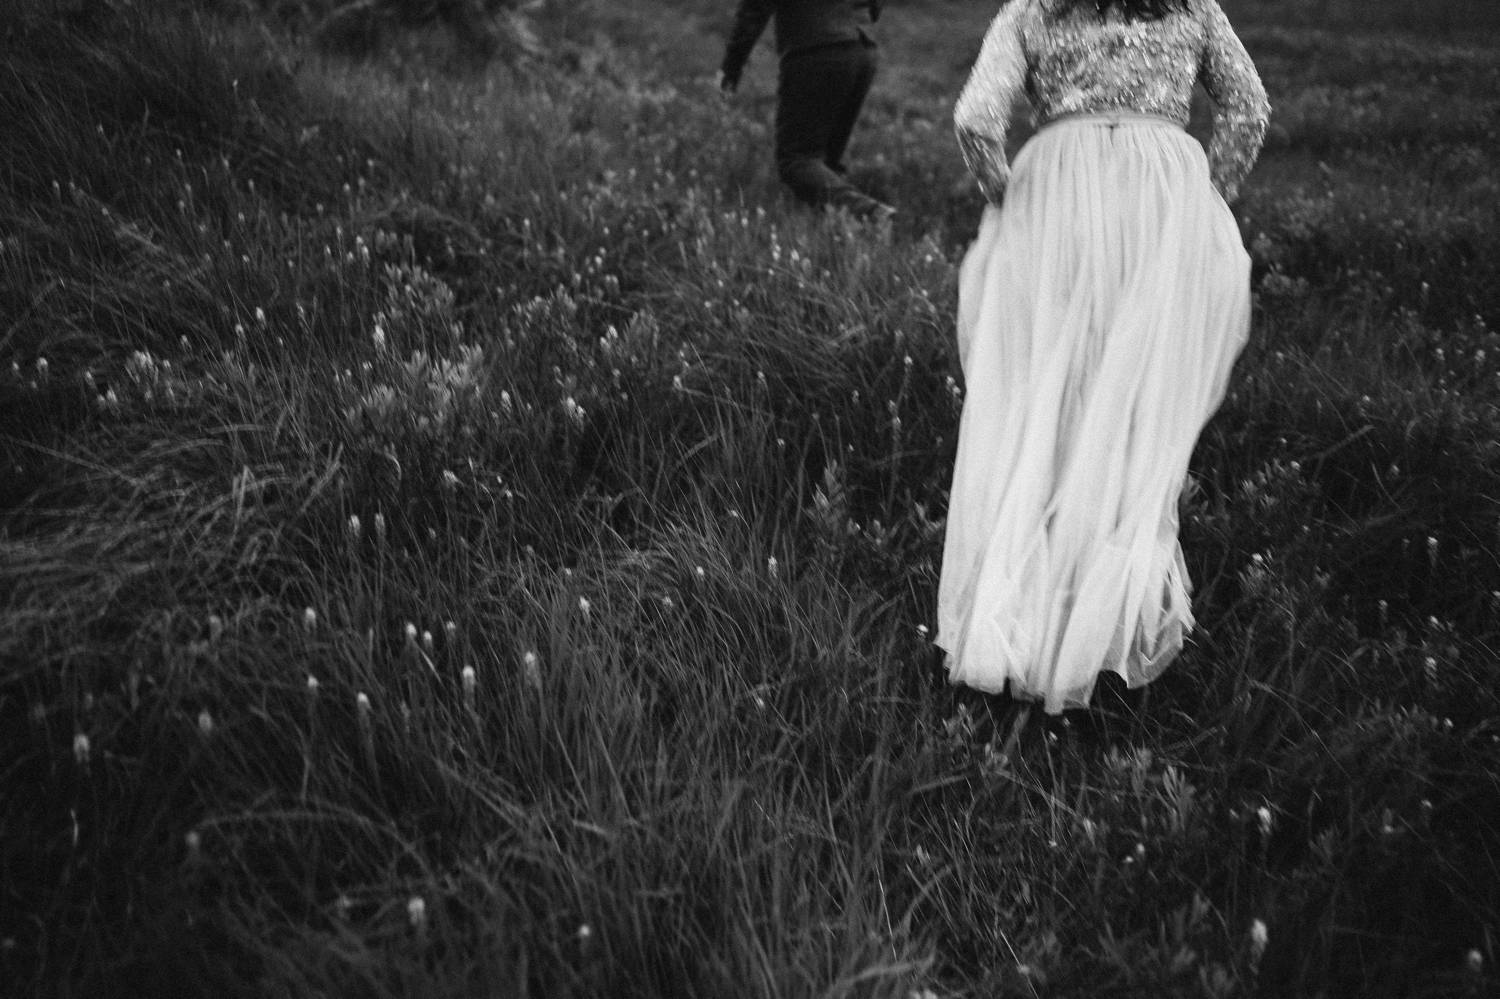 This black and white photo shows of a bride's flowing train as she climbs a grassy hill in Ireland. Photograph by Rob Dight.